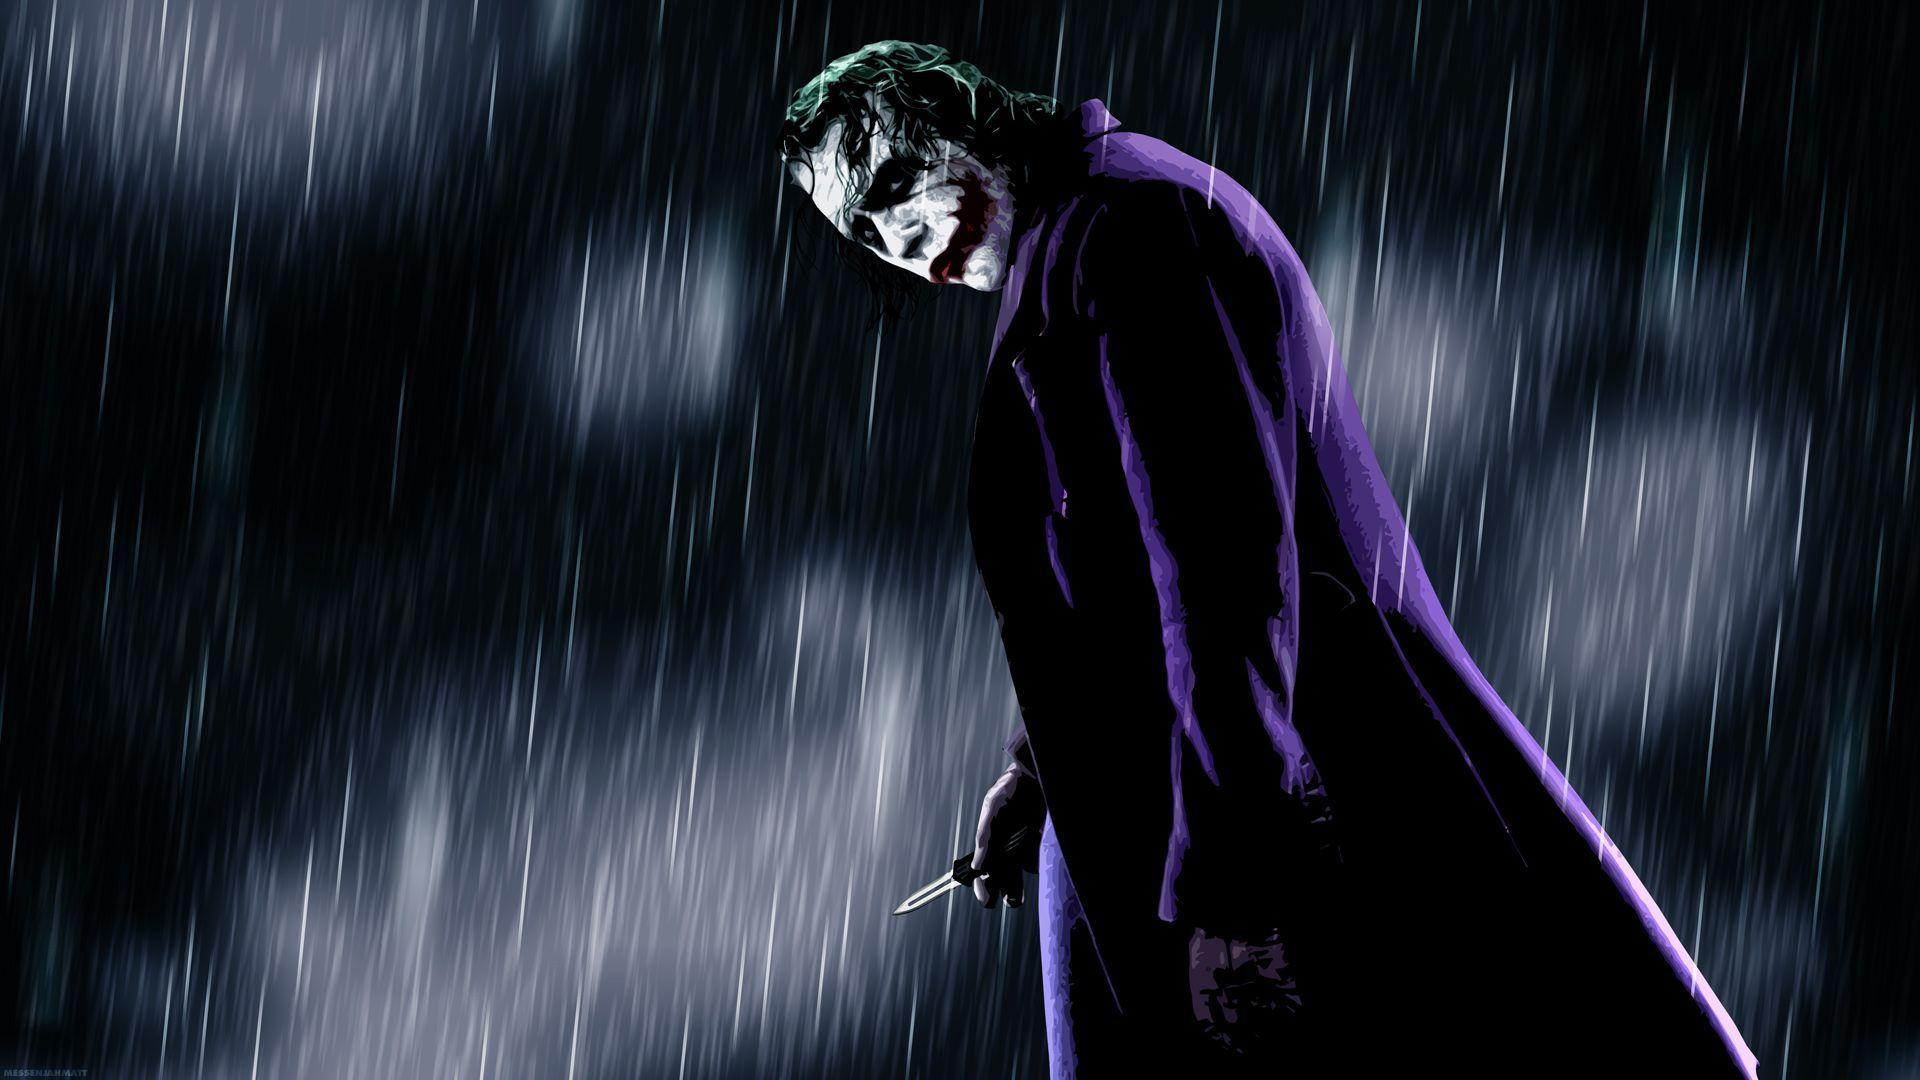 Wallpapers For > The Dark Knight Joker Wallpaper 1920x1080